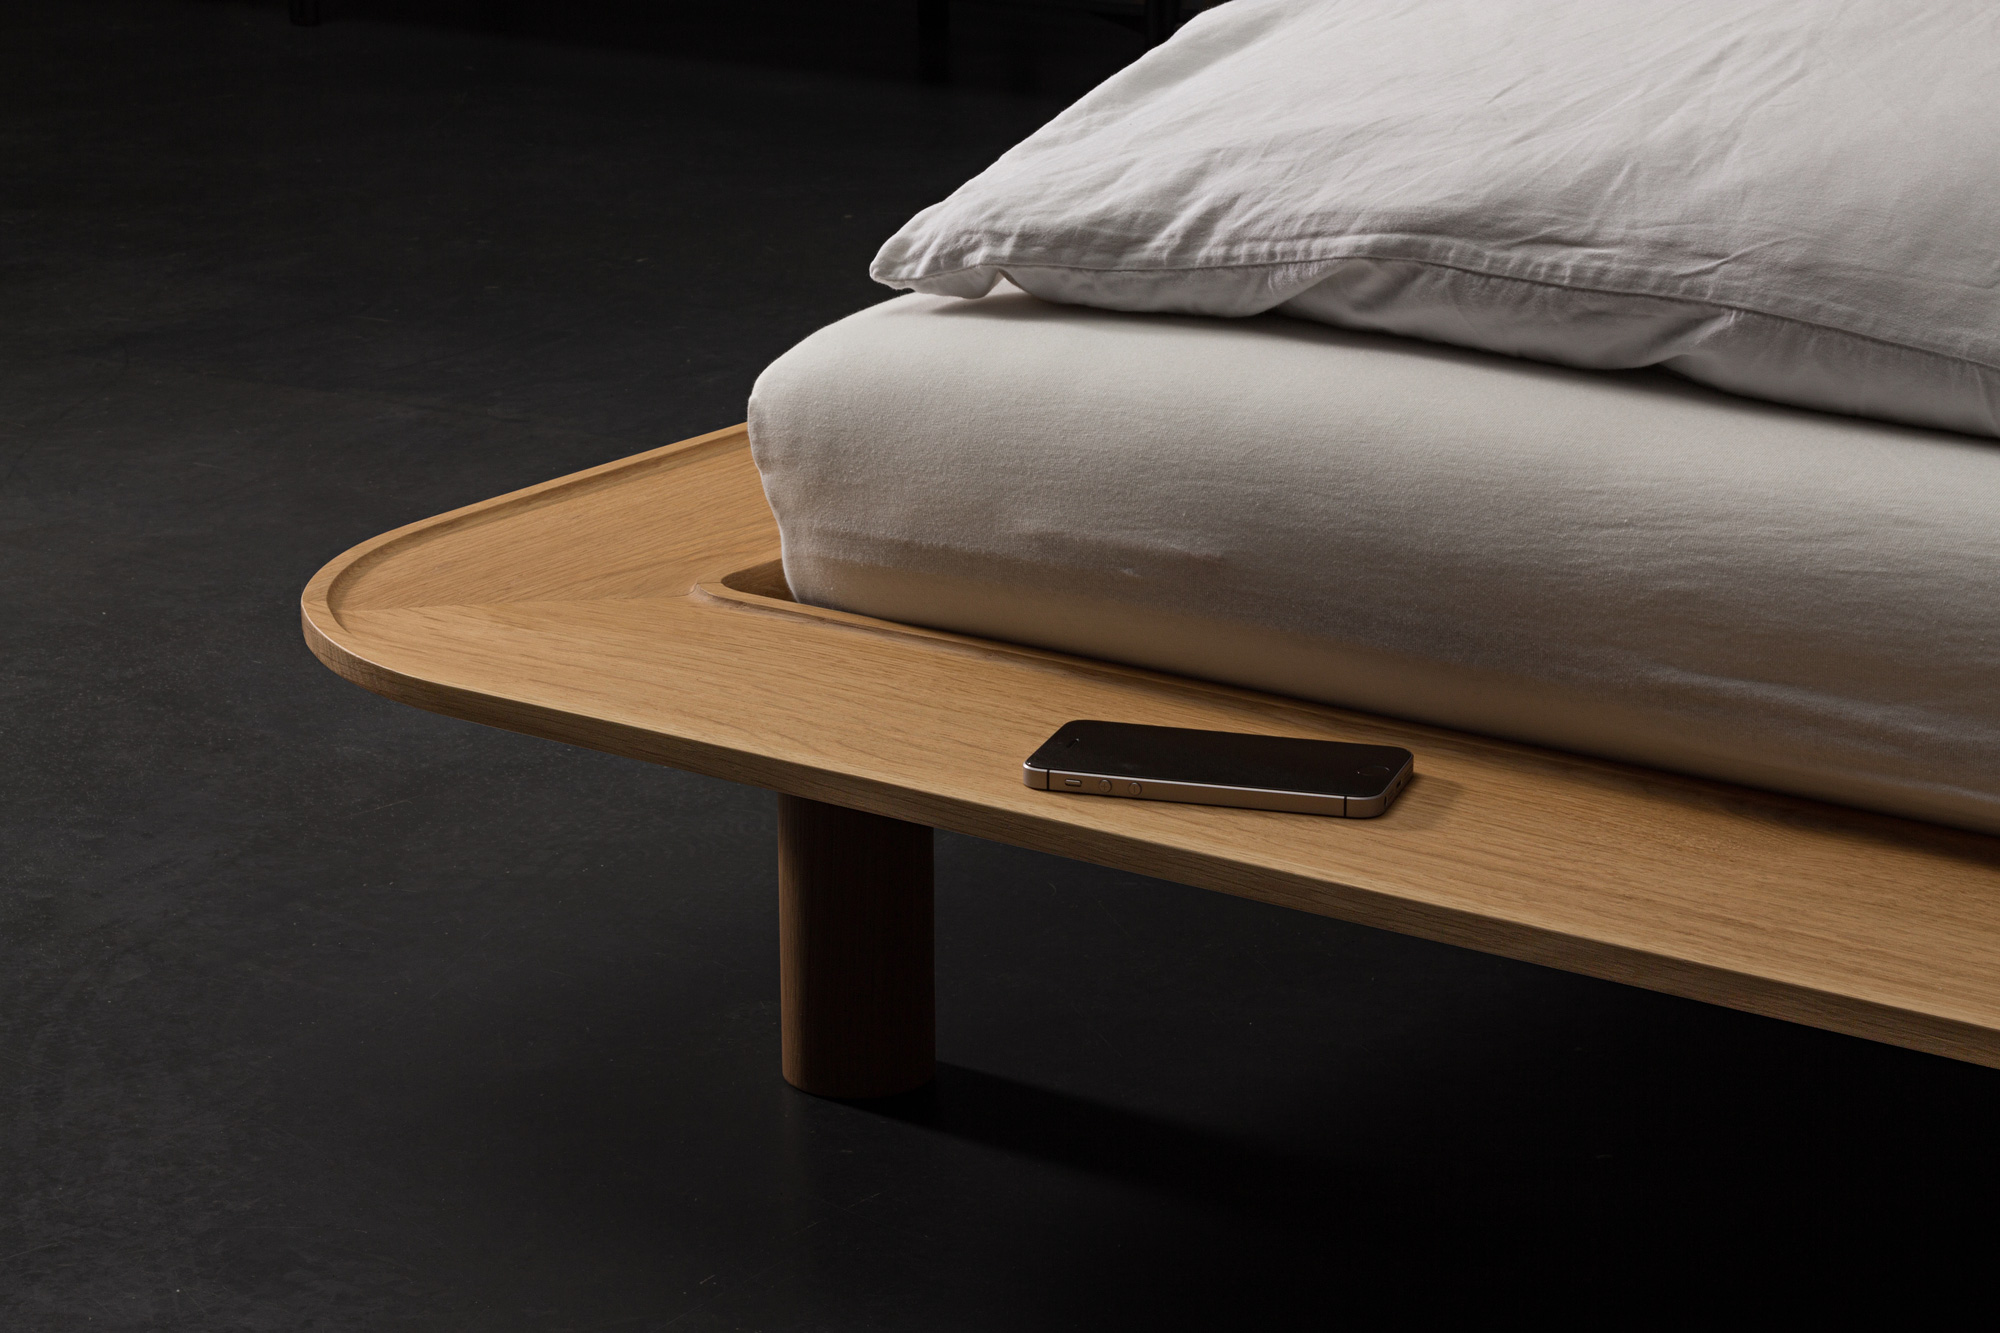 Industrial Bett Furniture Product Egli Studio Industrial Design